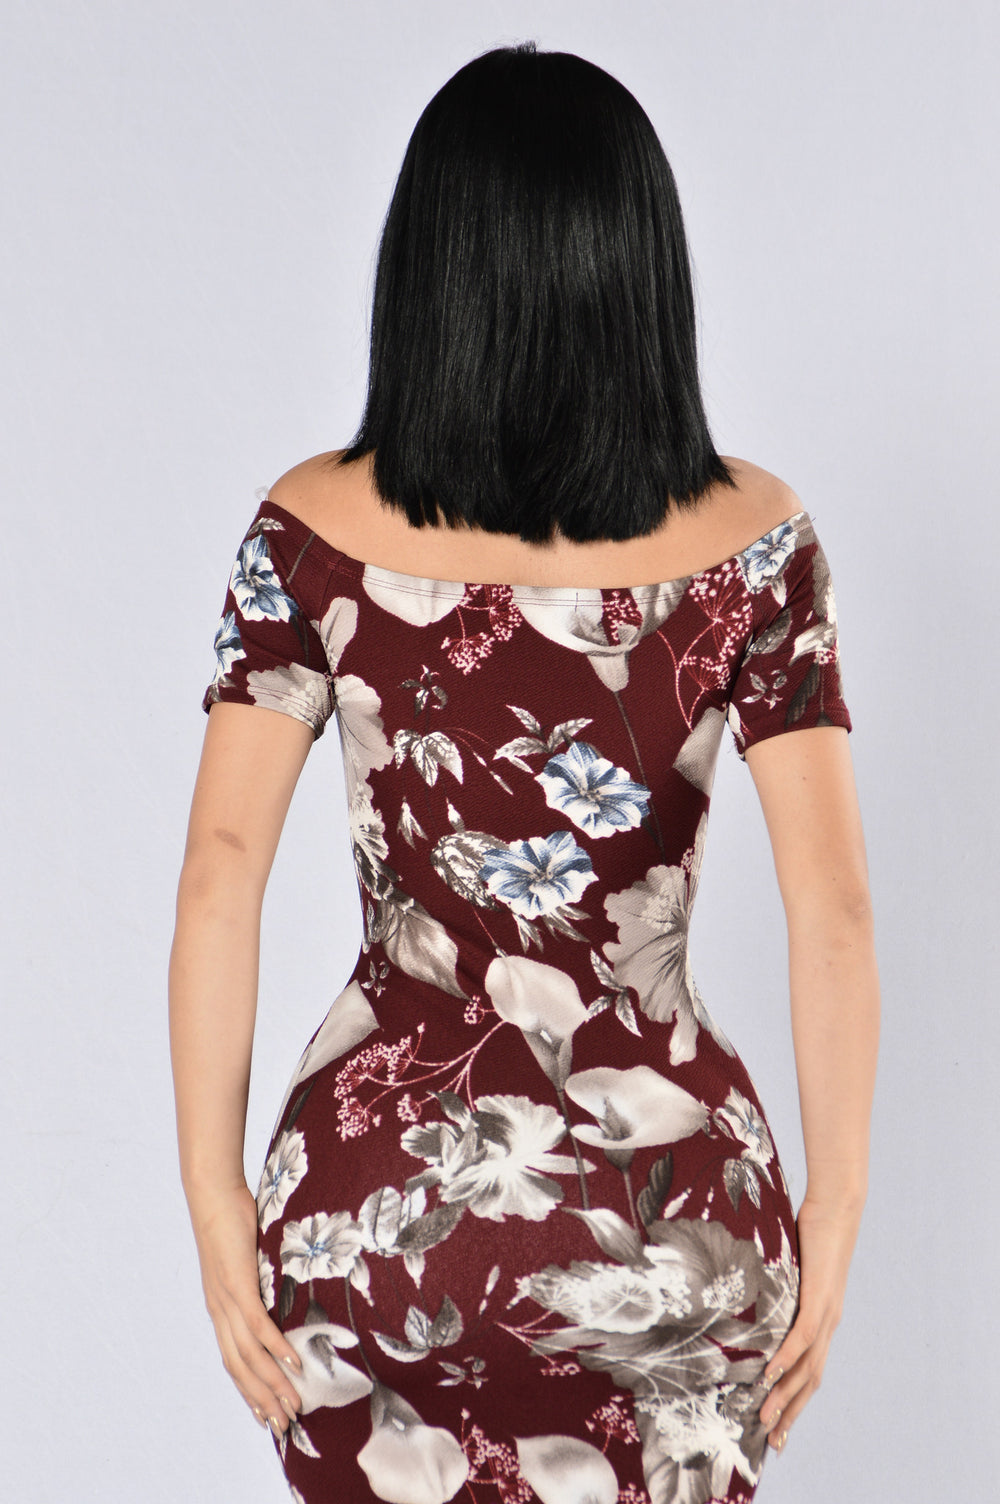 Not Your Typical Flower Girl Dress - Burgundy